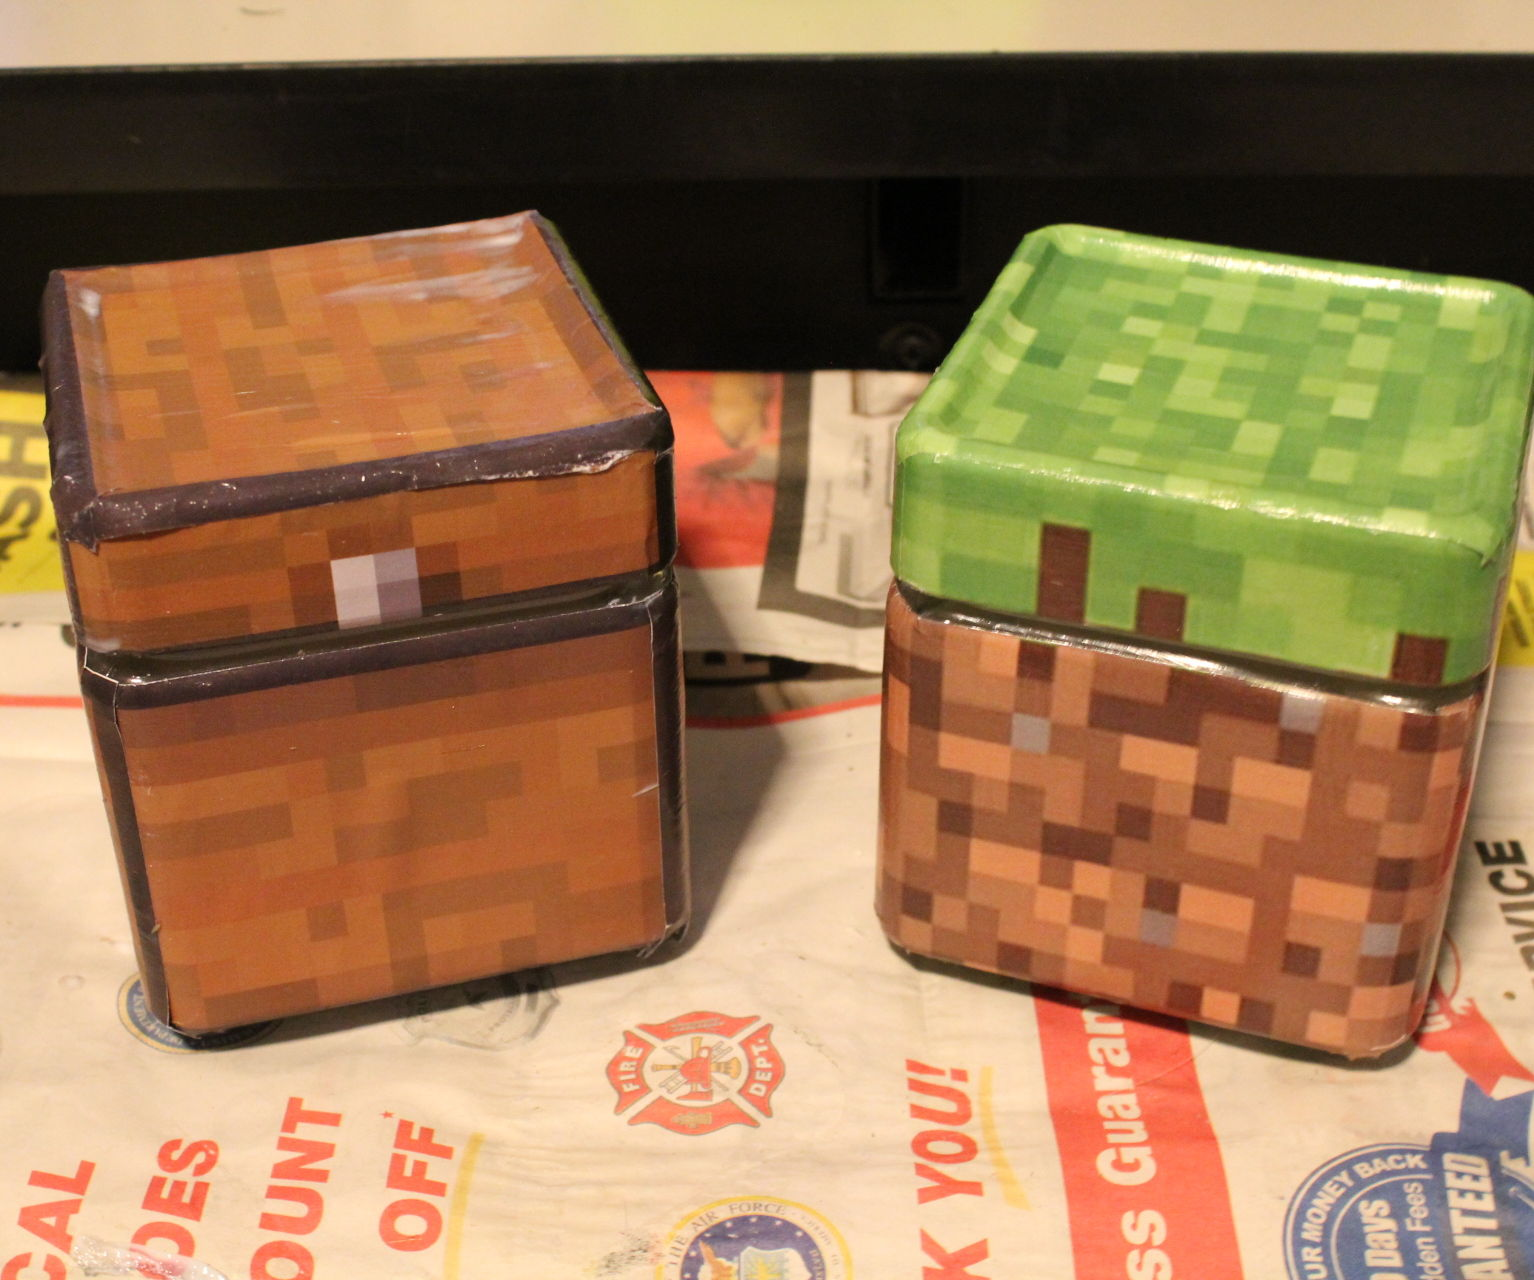 Dishwasher Safe Minecraft Cookie Jars